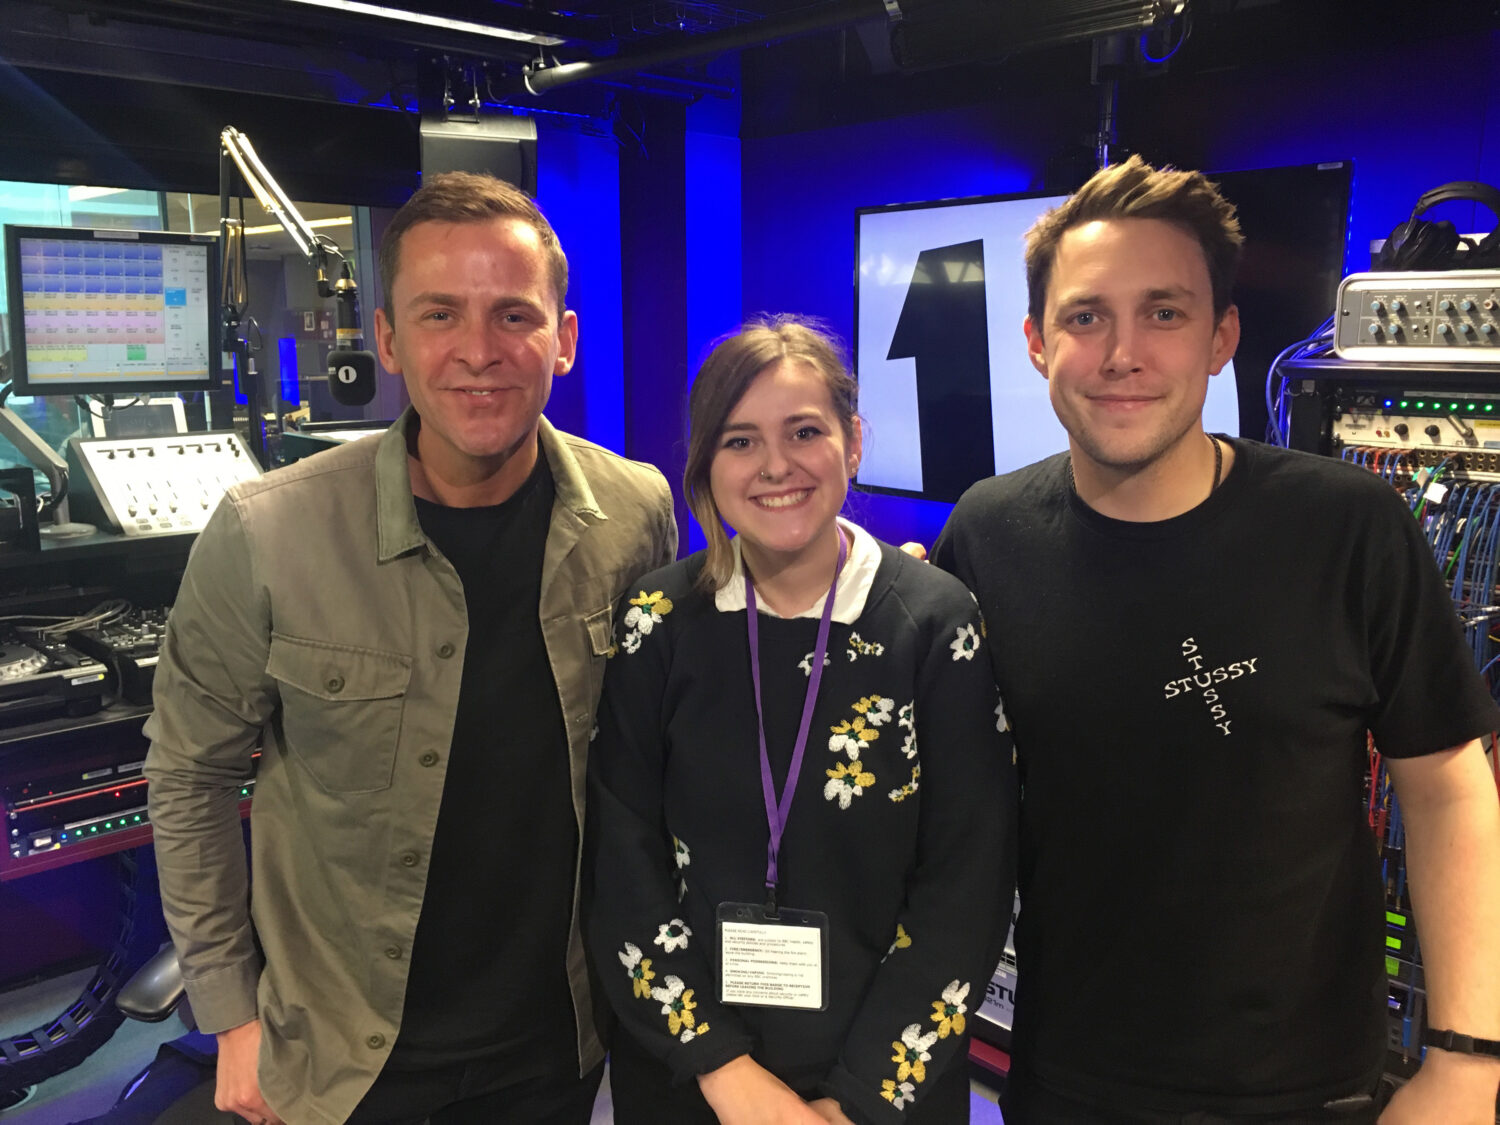 From Ringstead to Radio 1 PR Story